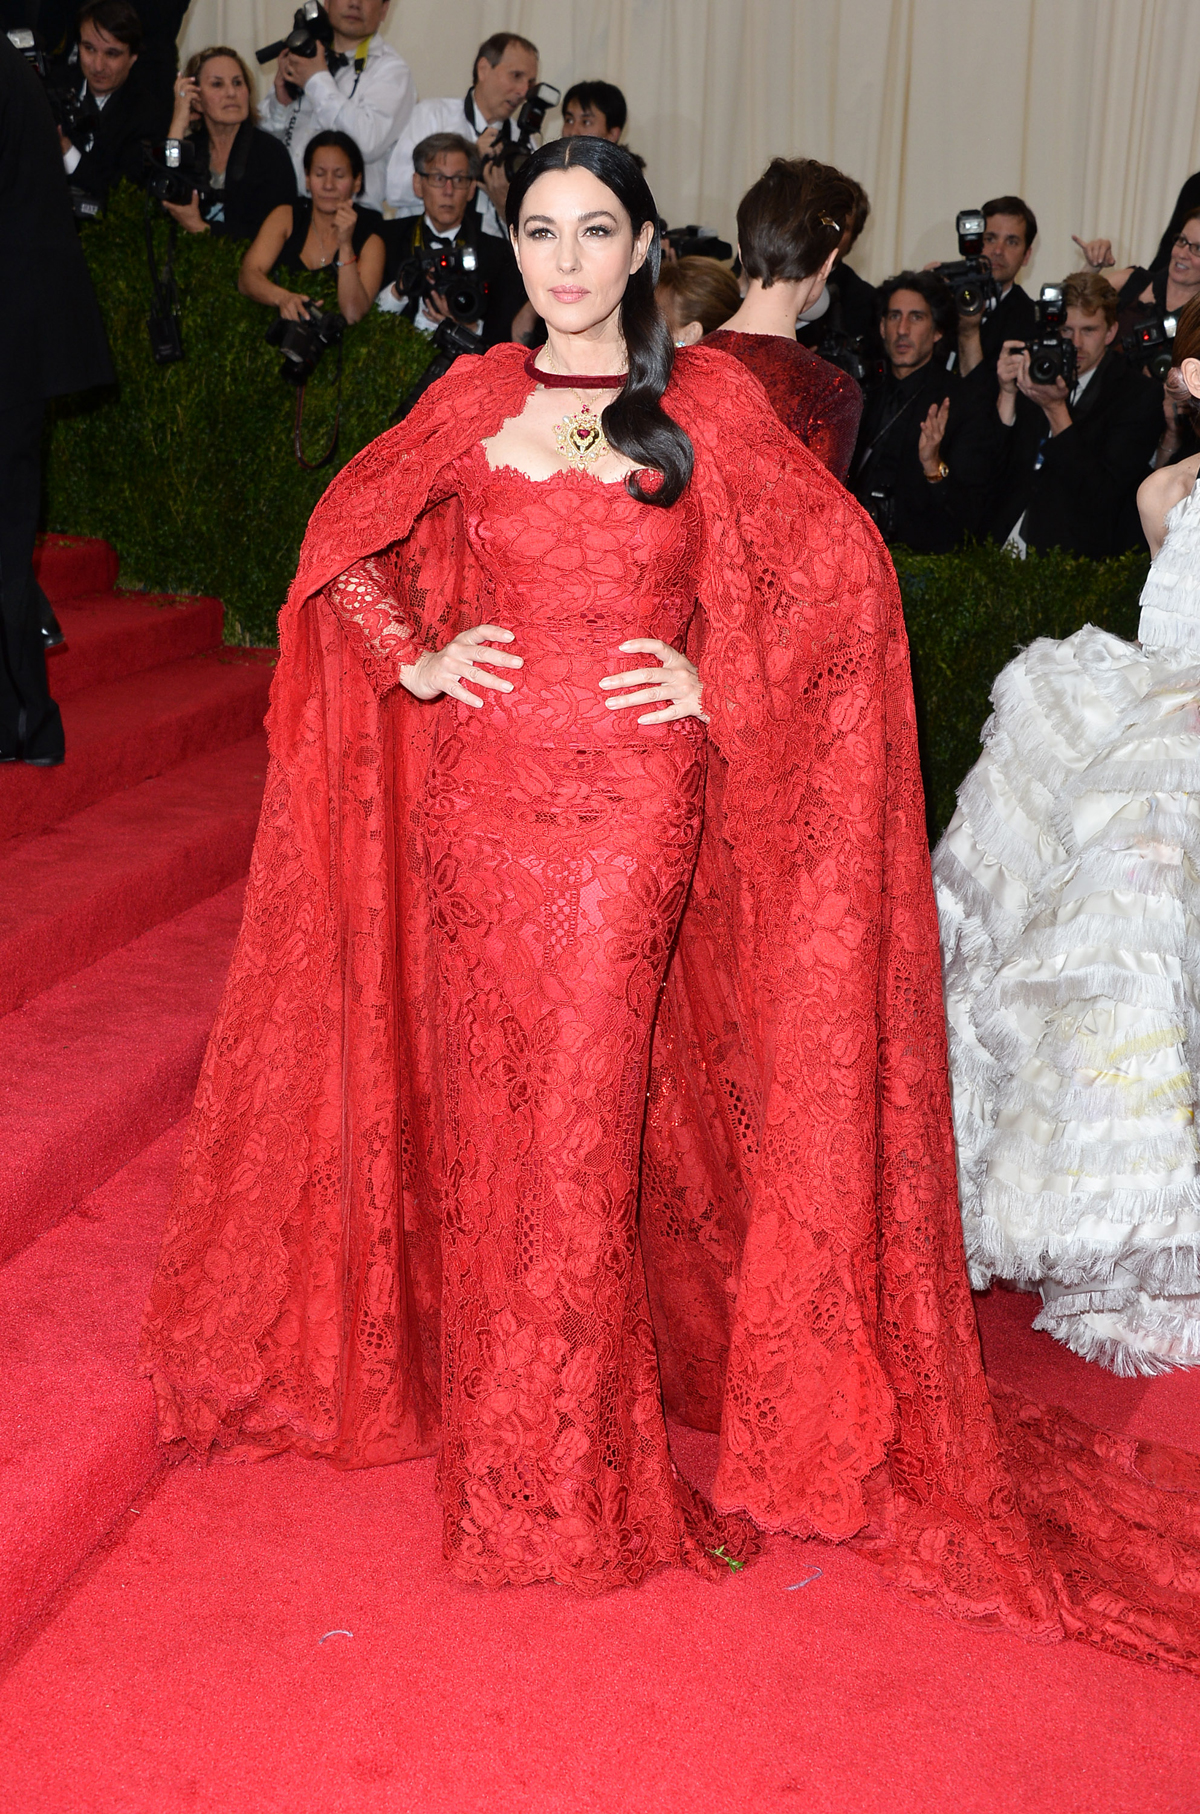 At the Met Gala, 2014